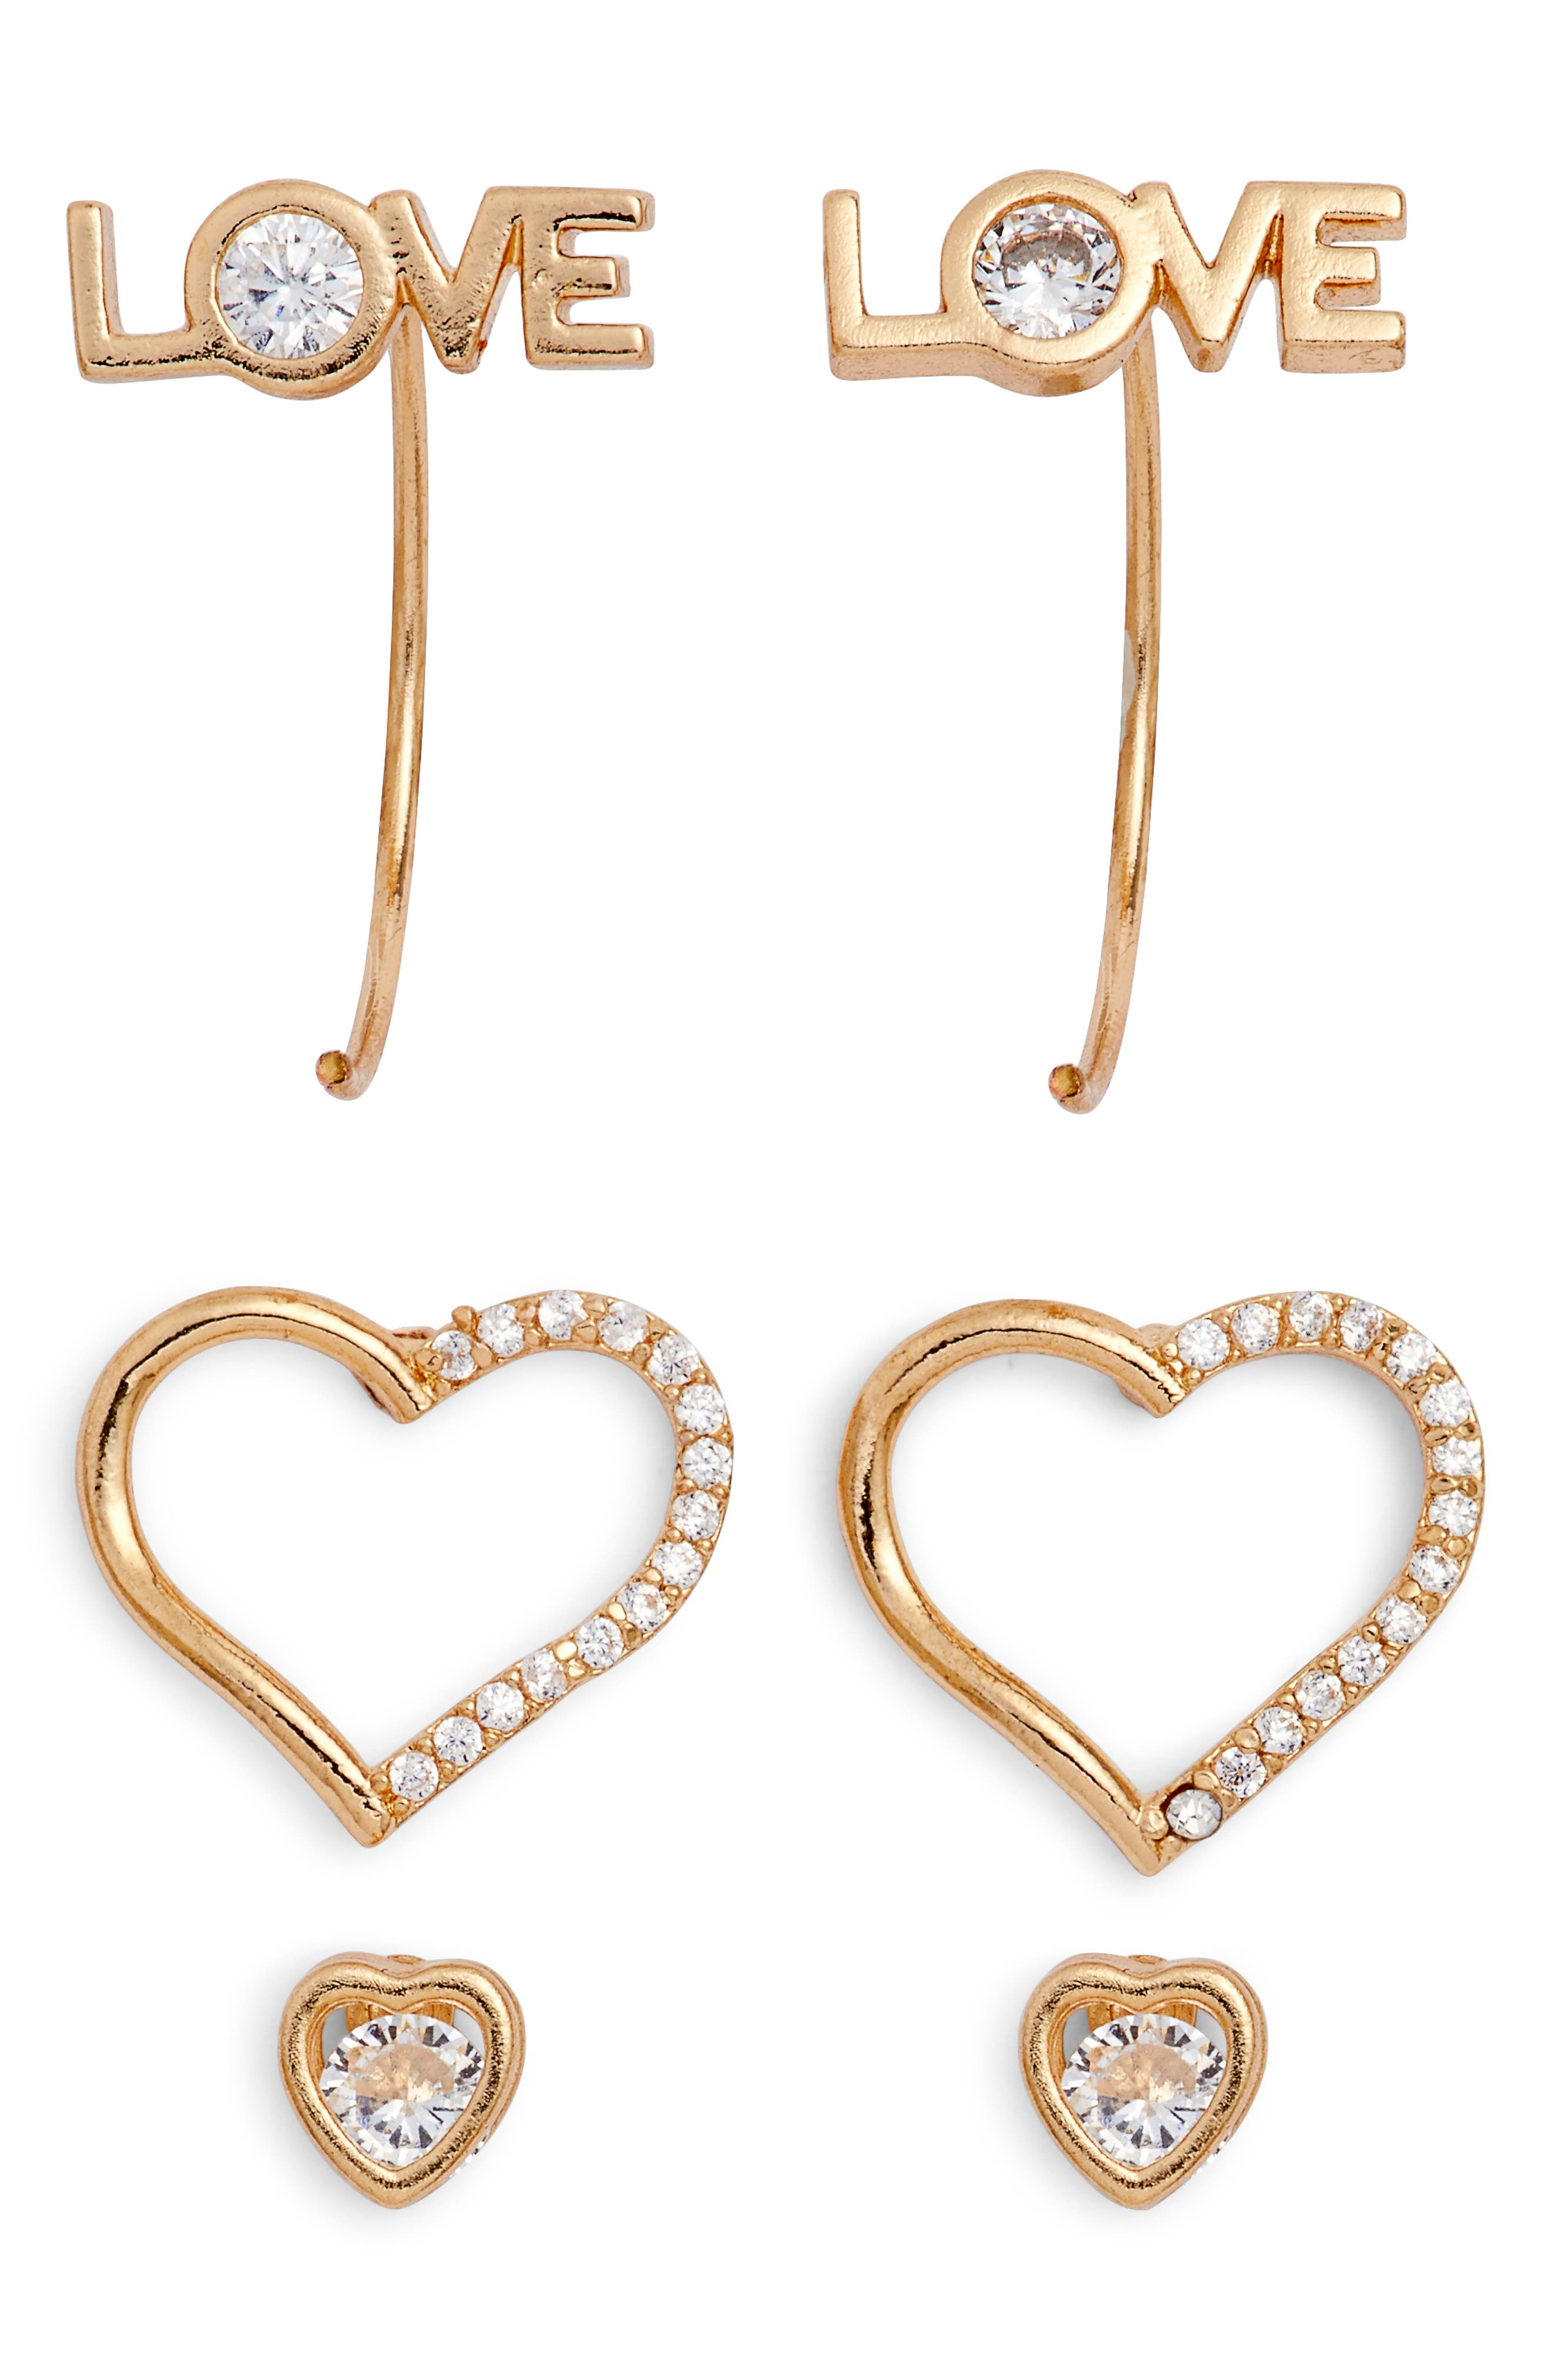 Love 3-Pack Assorted Earrings,                             Main thumbnail 1, color,                             Gold